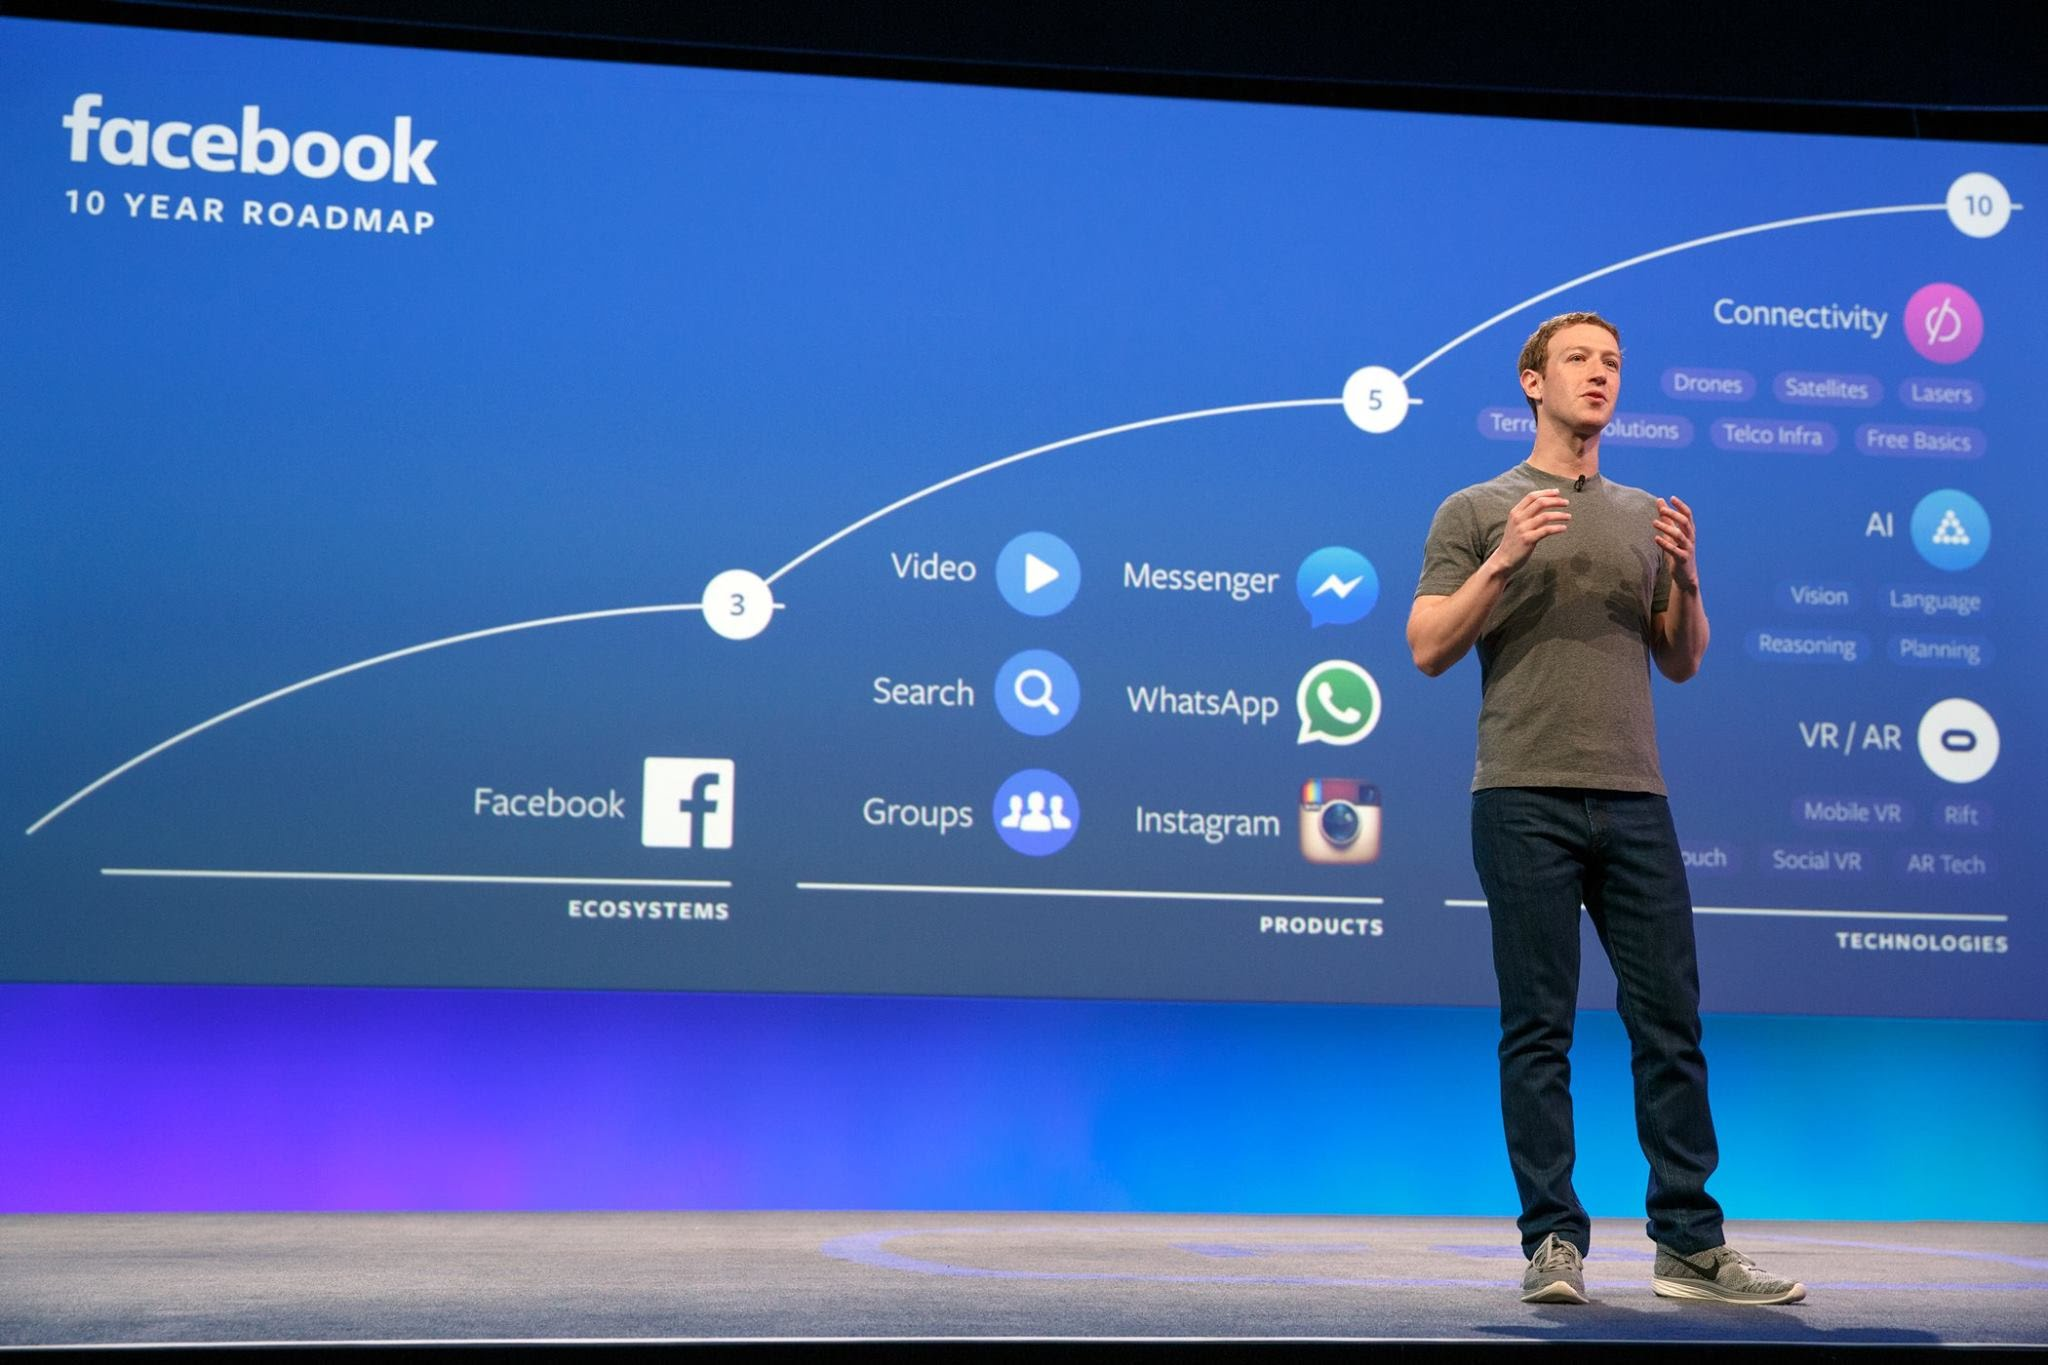 Keynote de Mark Zuckerberg : 10 ans de roadmap pour Facebook (incluant l'IA)